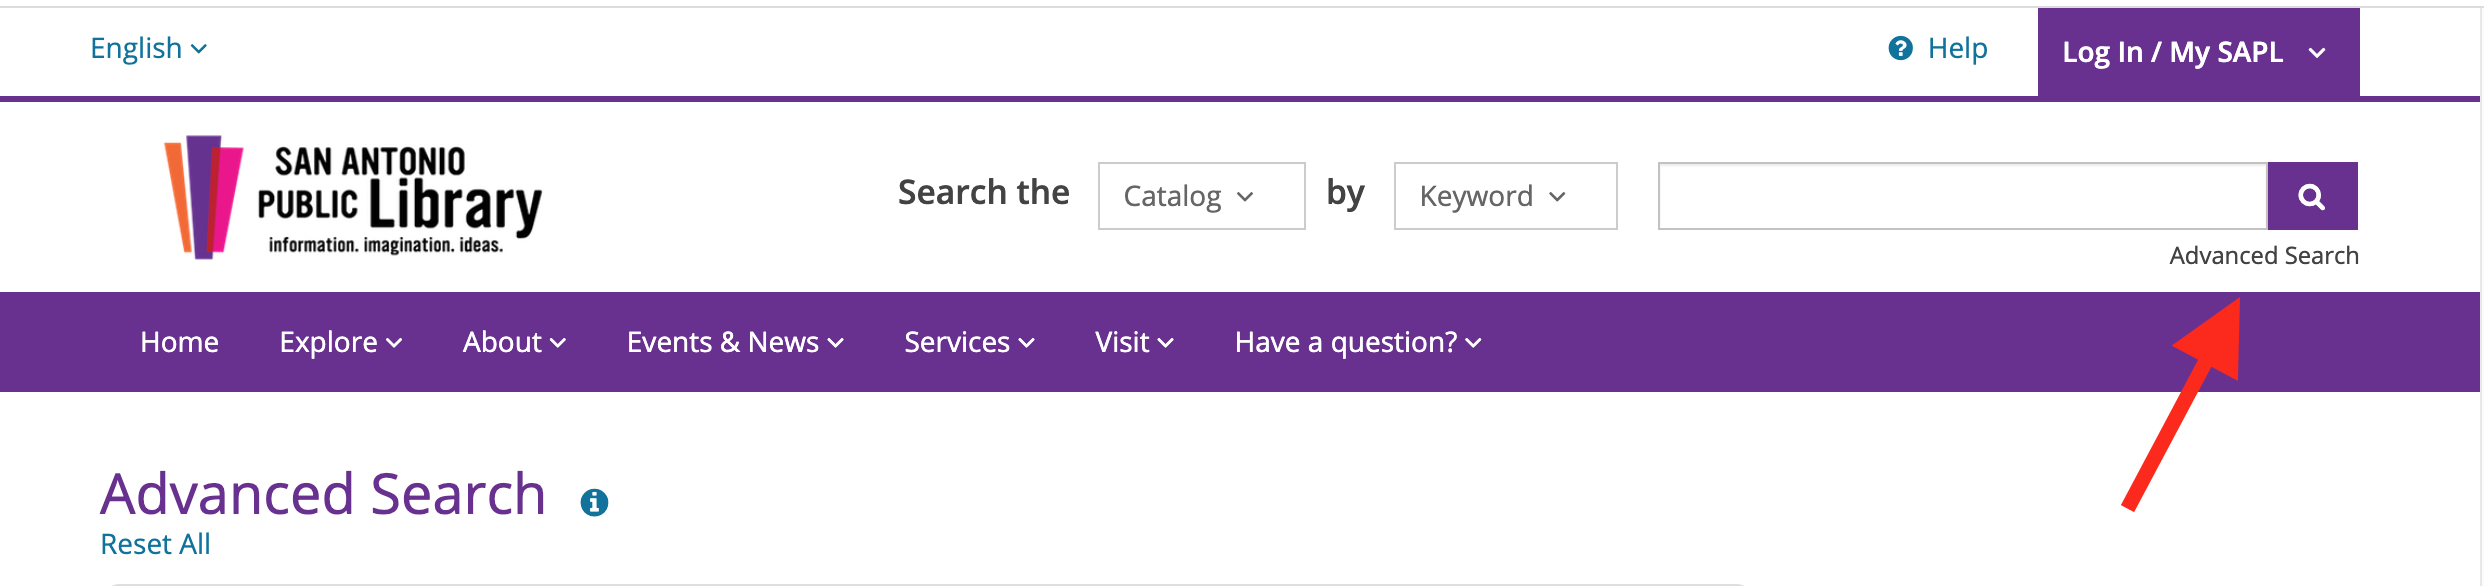 Advanced Search link on SAPL